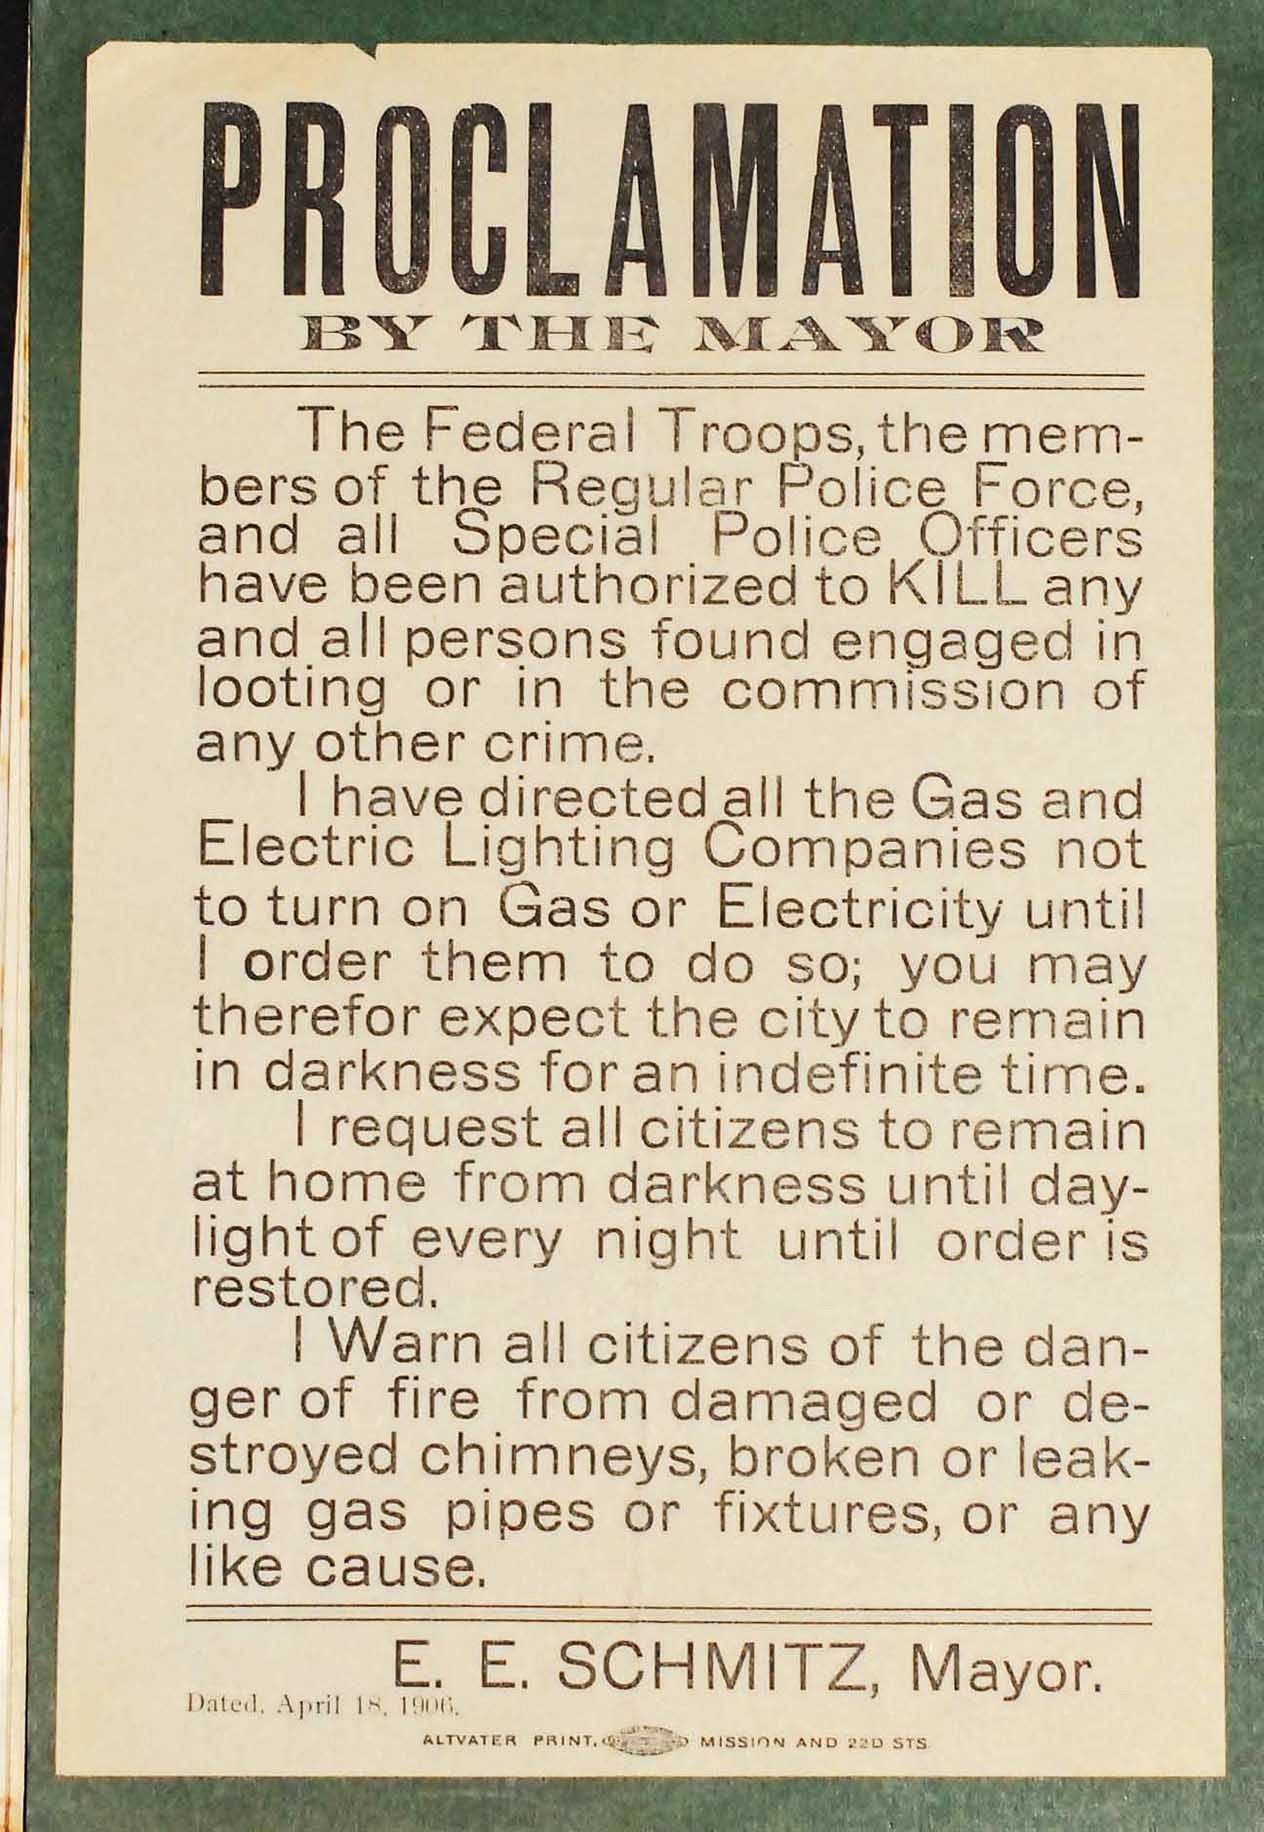 From San Fransisco 1906. After the great earthquake, soldiers and police were ordered to shoot til kill anyone caught looting or engaged in other criminal activity.